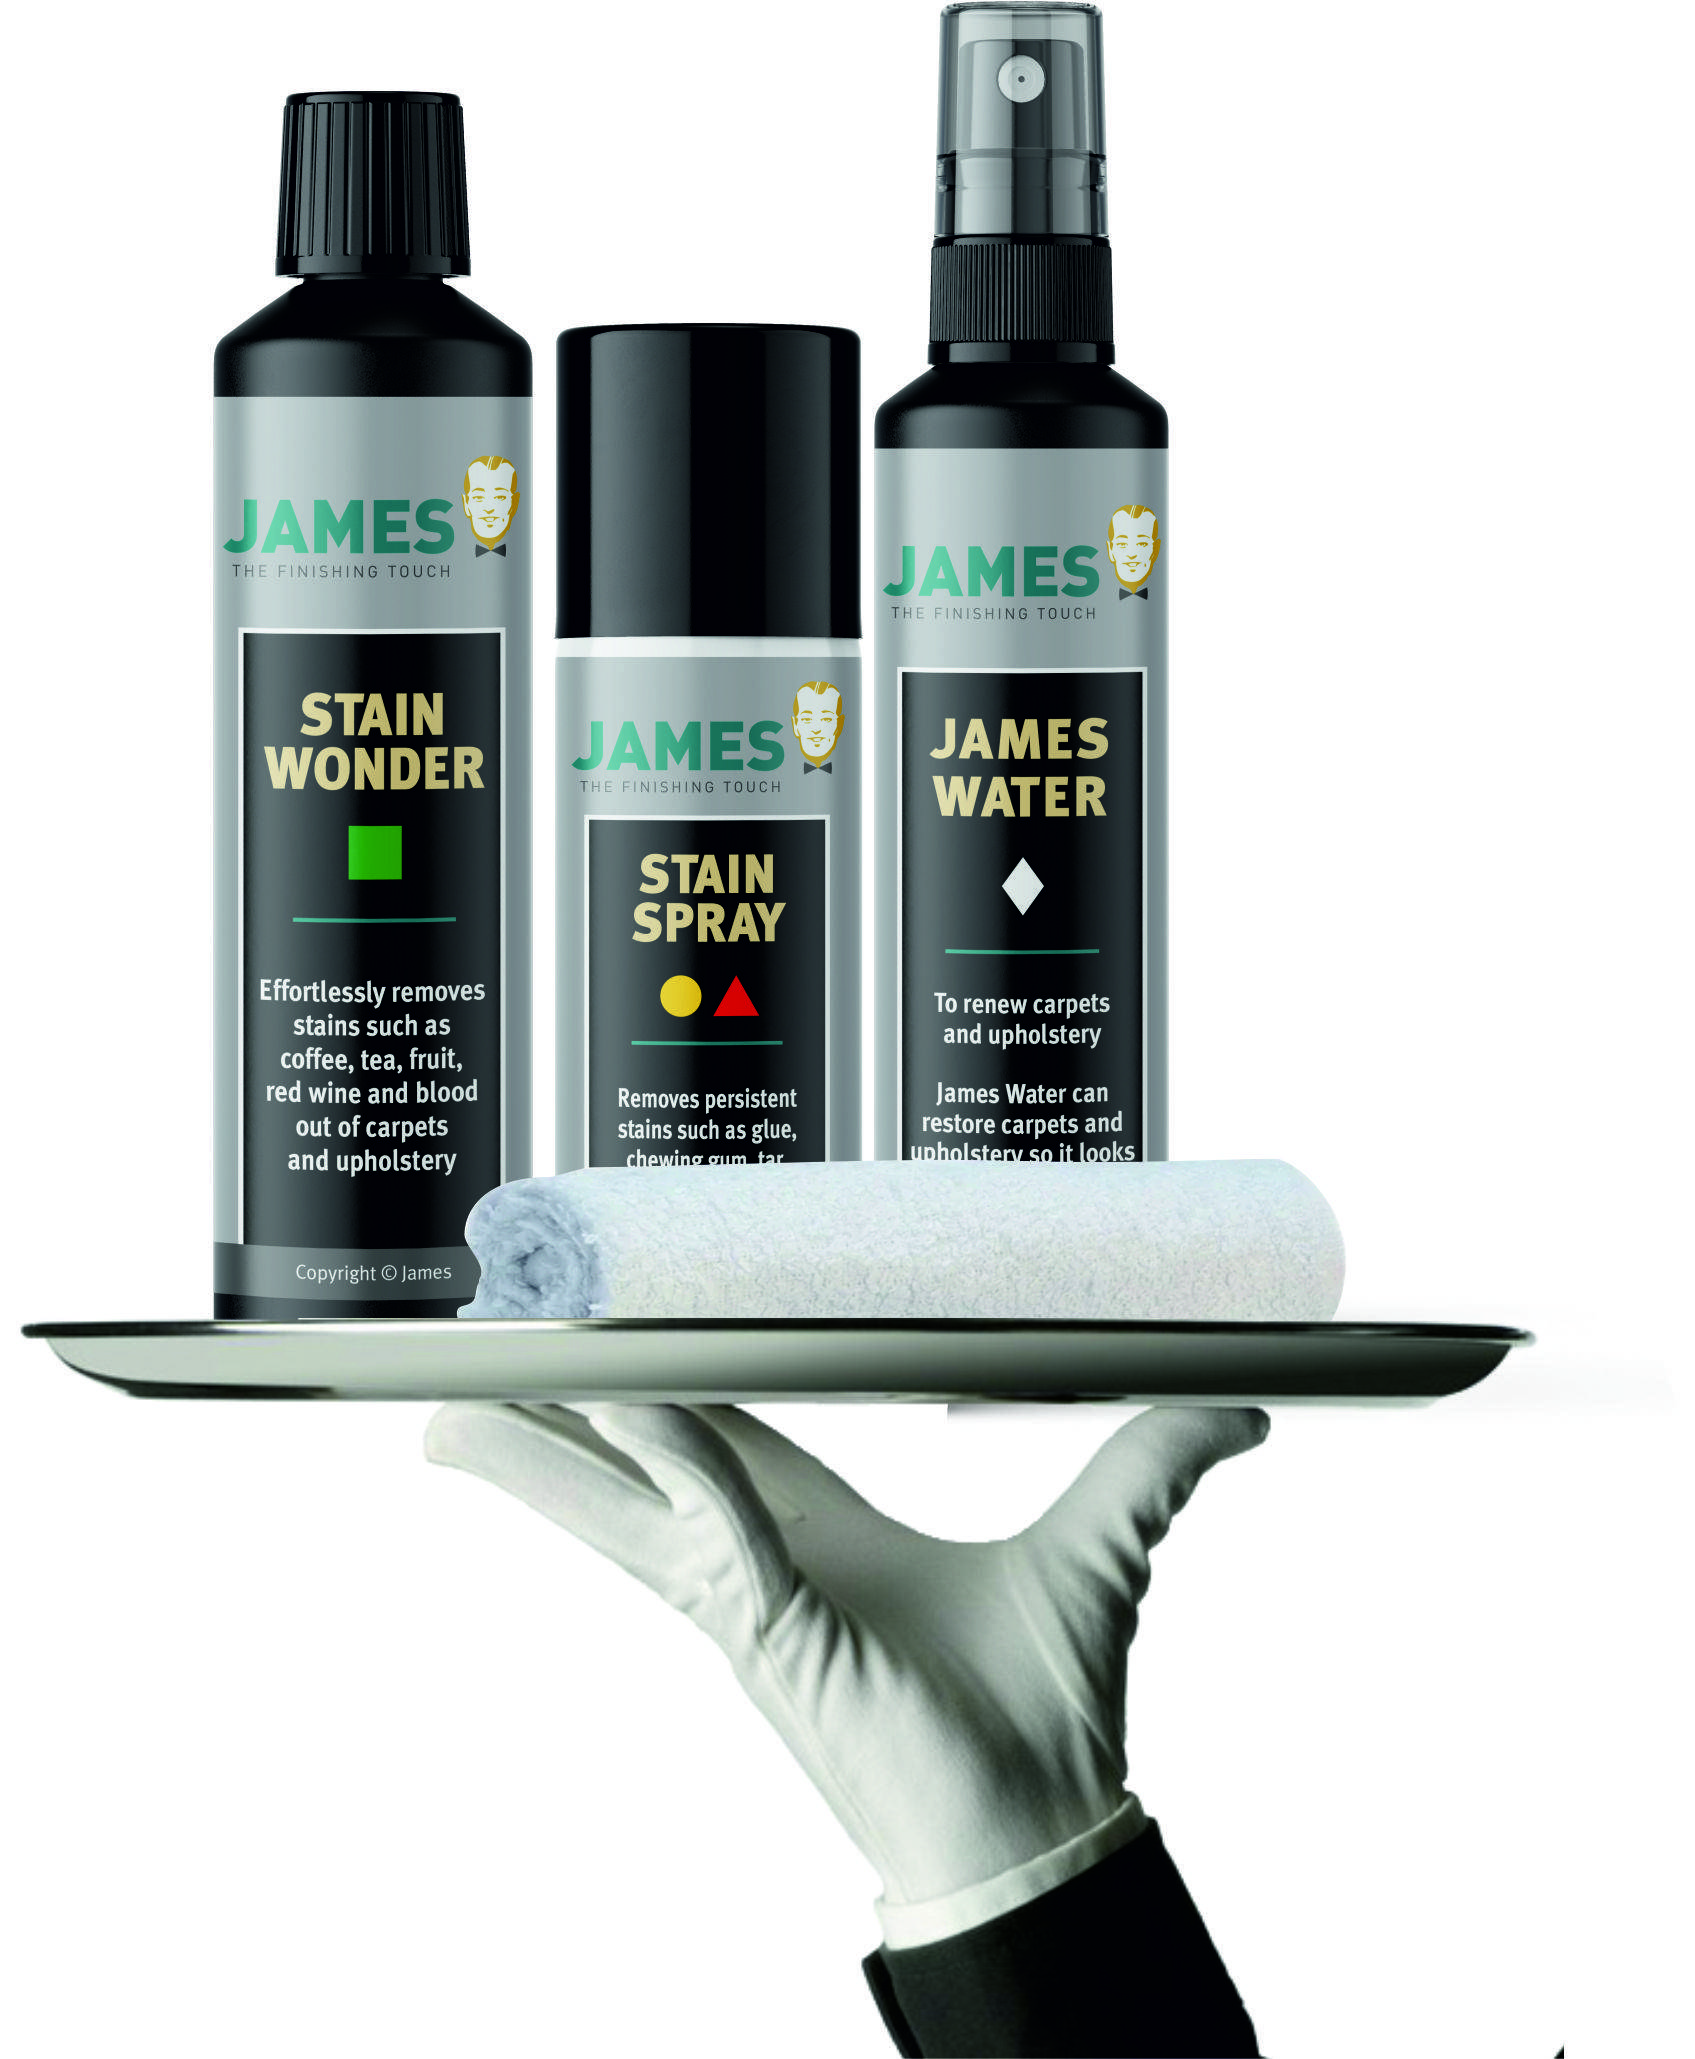 James Cleaner - James Stain Wonder - The 1 component you'll need most in the James Starter Set - your Stain First Aid Kit - to eliminate nearly all of your stains image 3